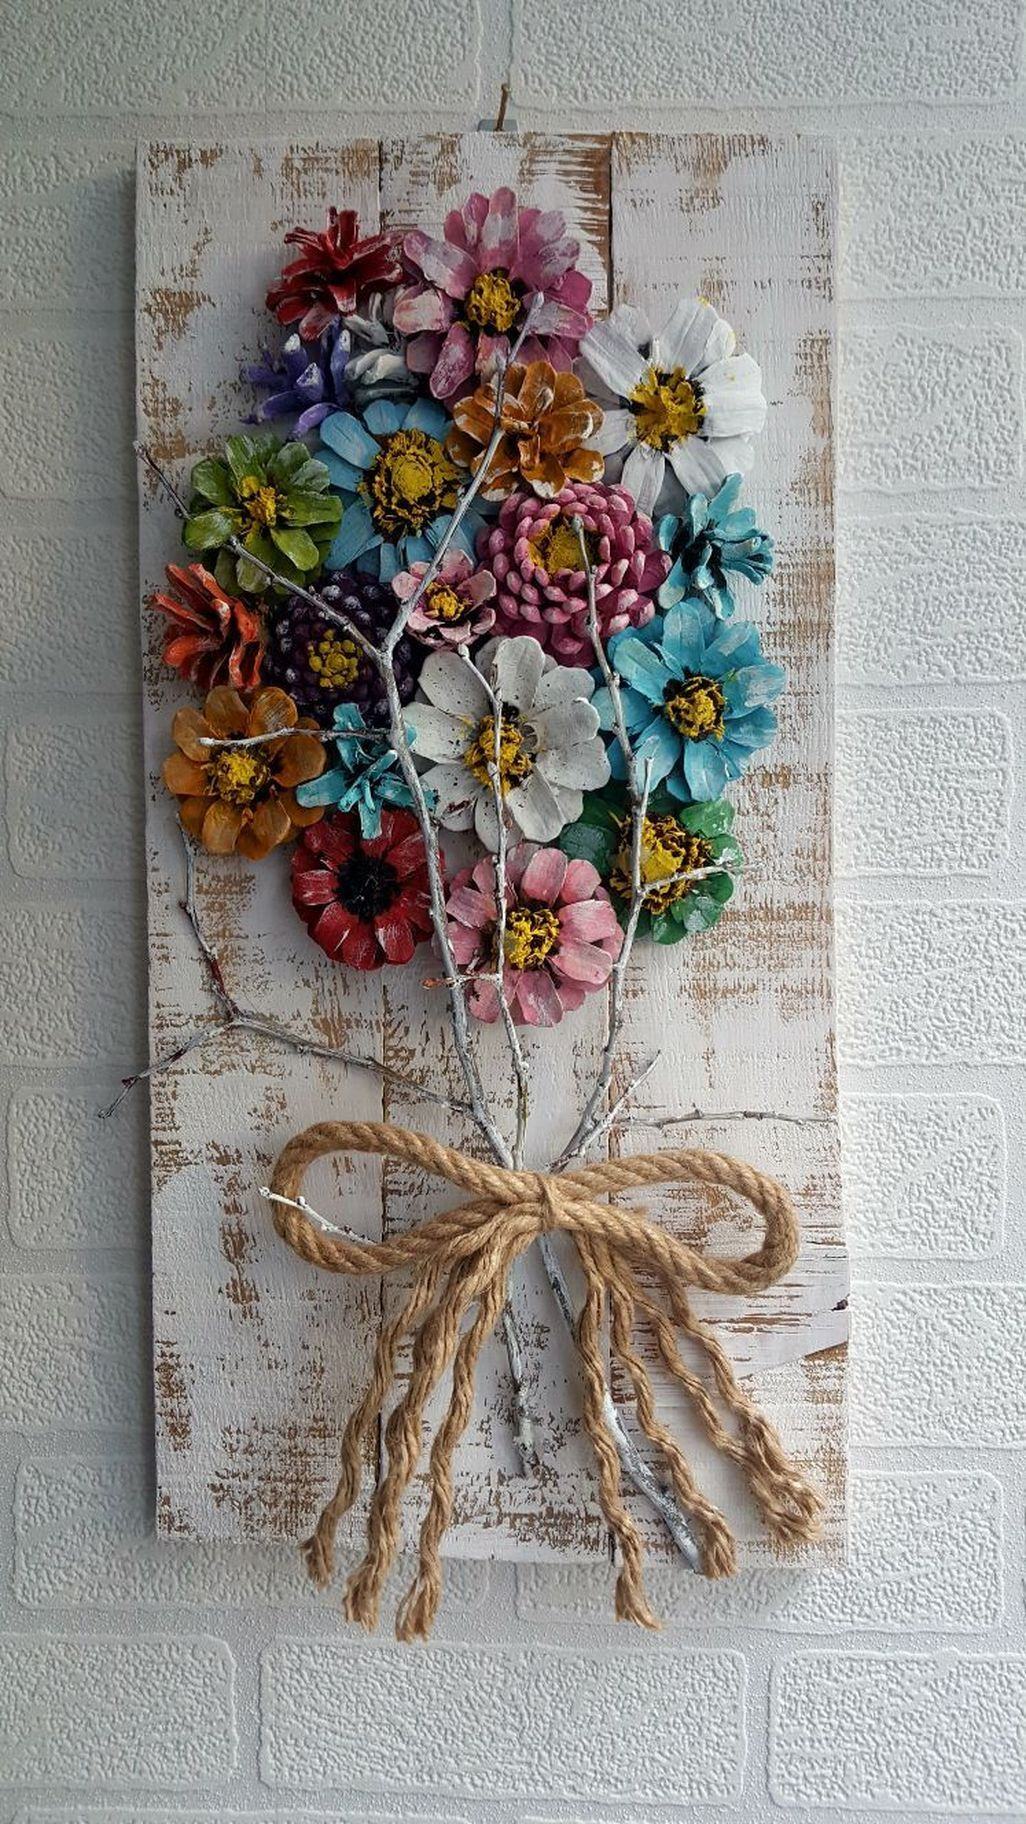 Pin By Trend4homy On Trending Decoration In 2019: Pine Cone Decorations, Pine Cone Crafts, Pine Cone Art